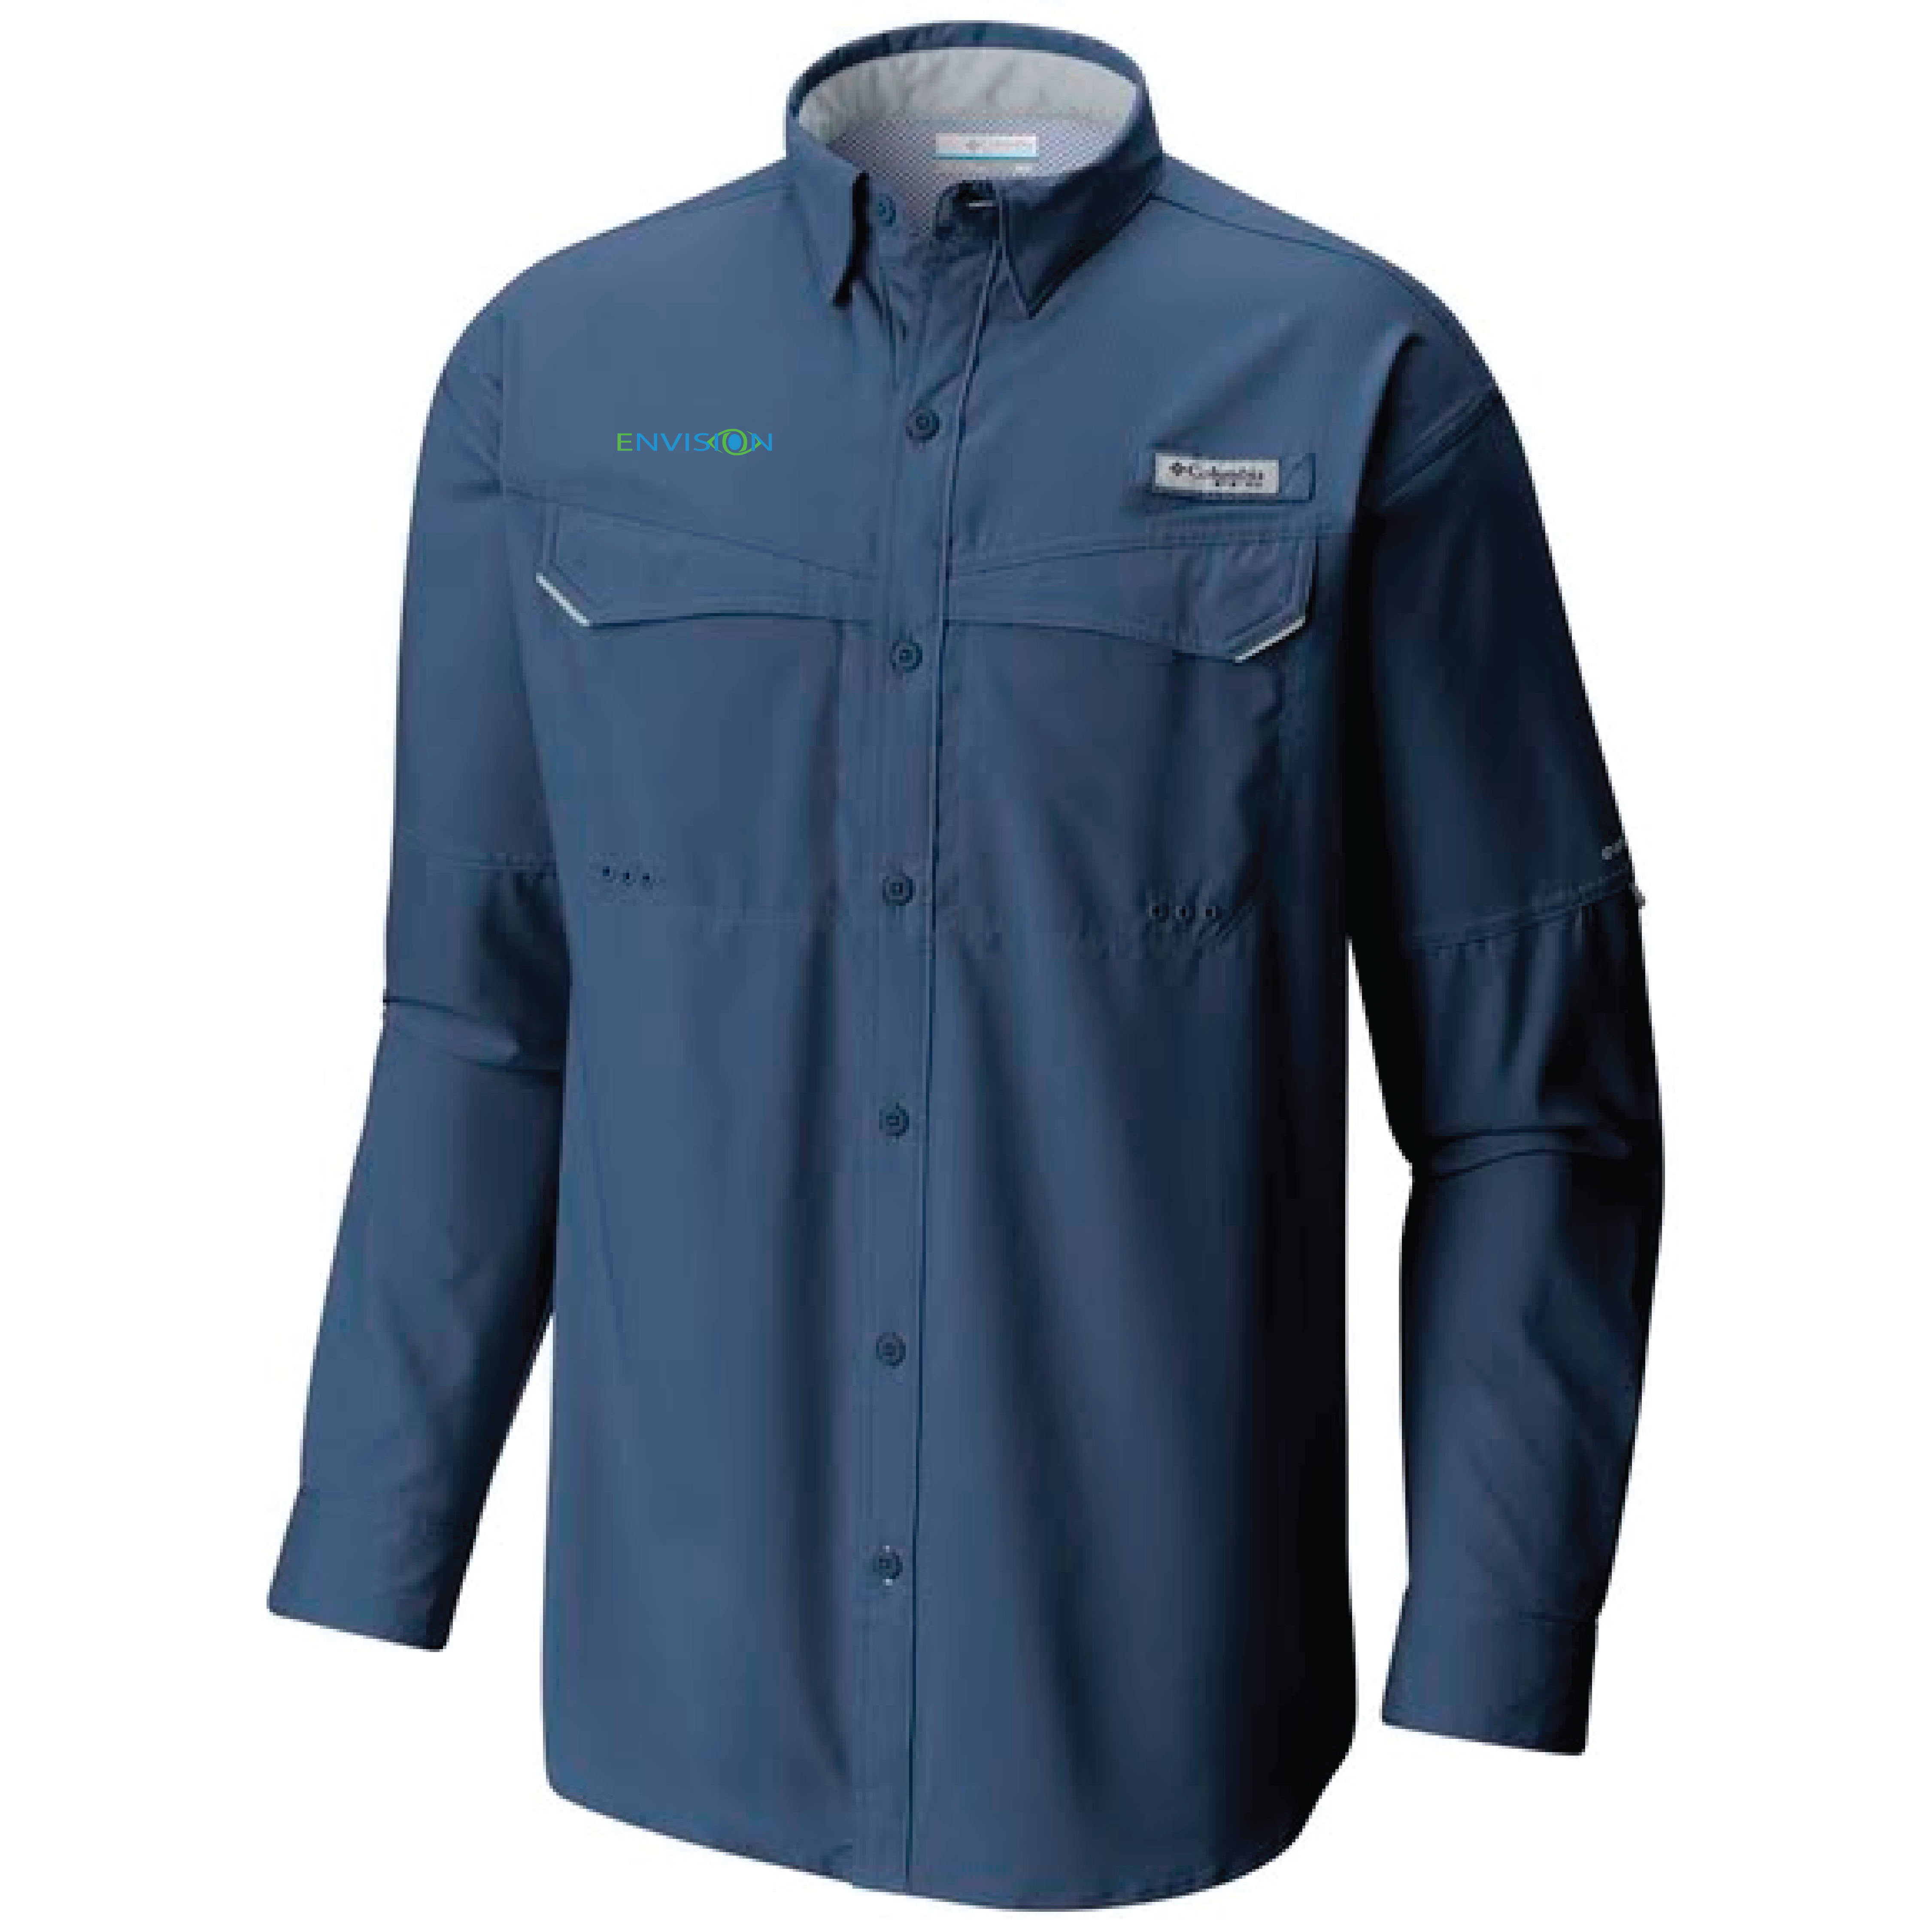 8daf6793f75 Envision Field Mens: Columbia Men's Low Drag Offshore Long Sleeve Shirt (3  Colors)